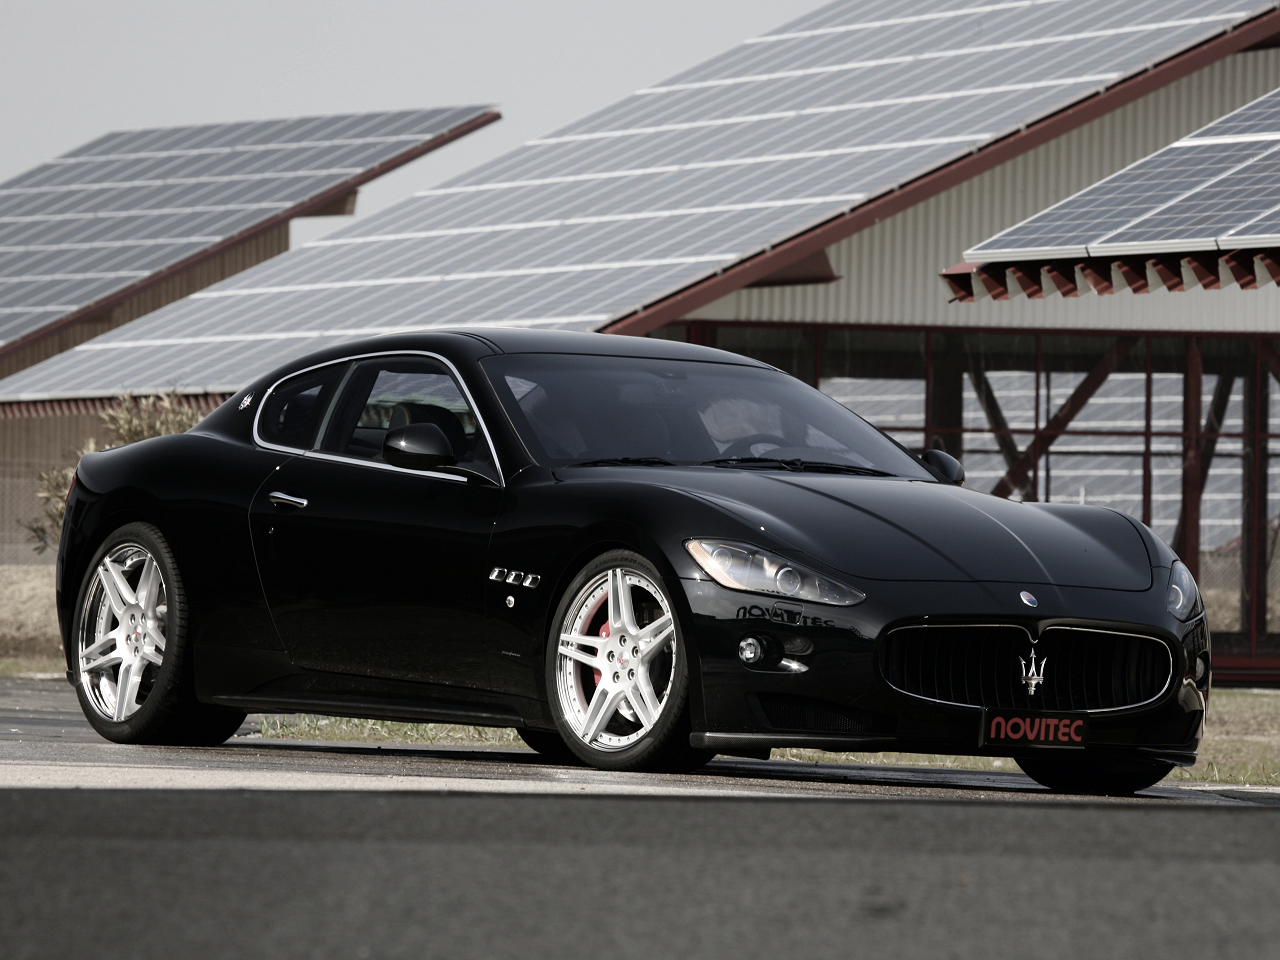 wallpaper 1280x960: Maserati Grand Torismo S by Novitec Tridente